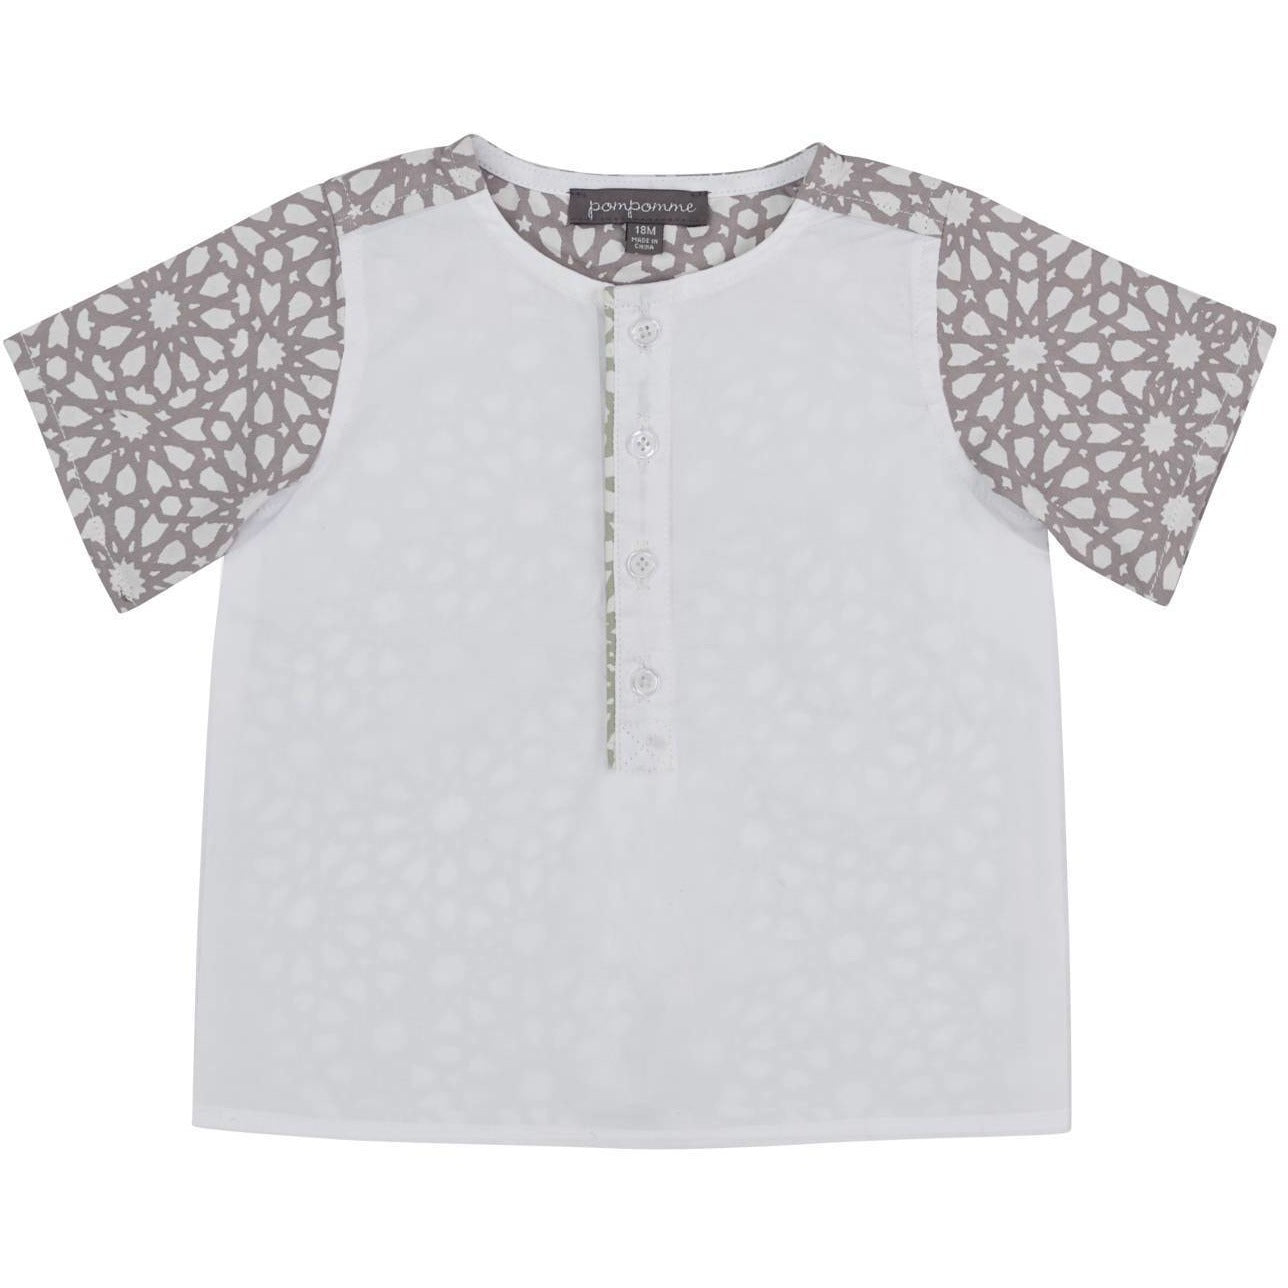 Pompomme White/Grey/Mint Print Shirt